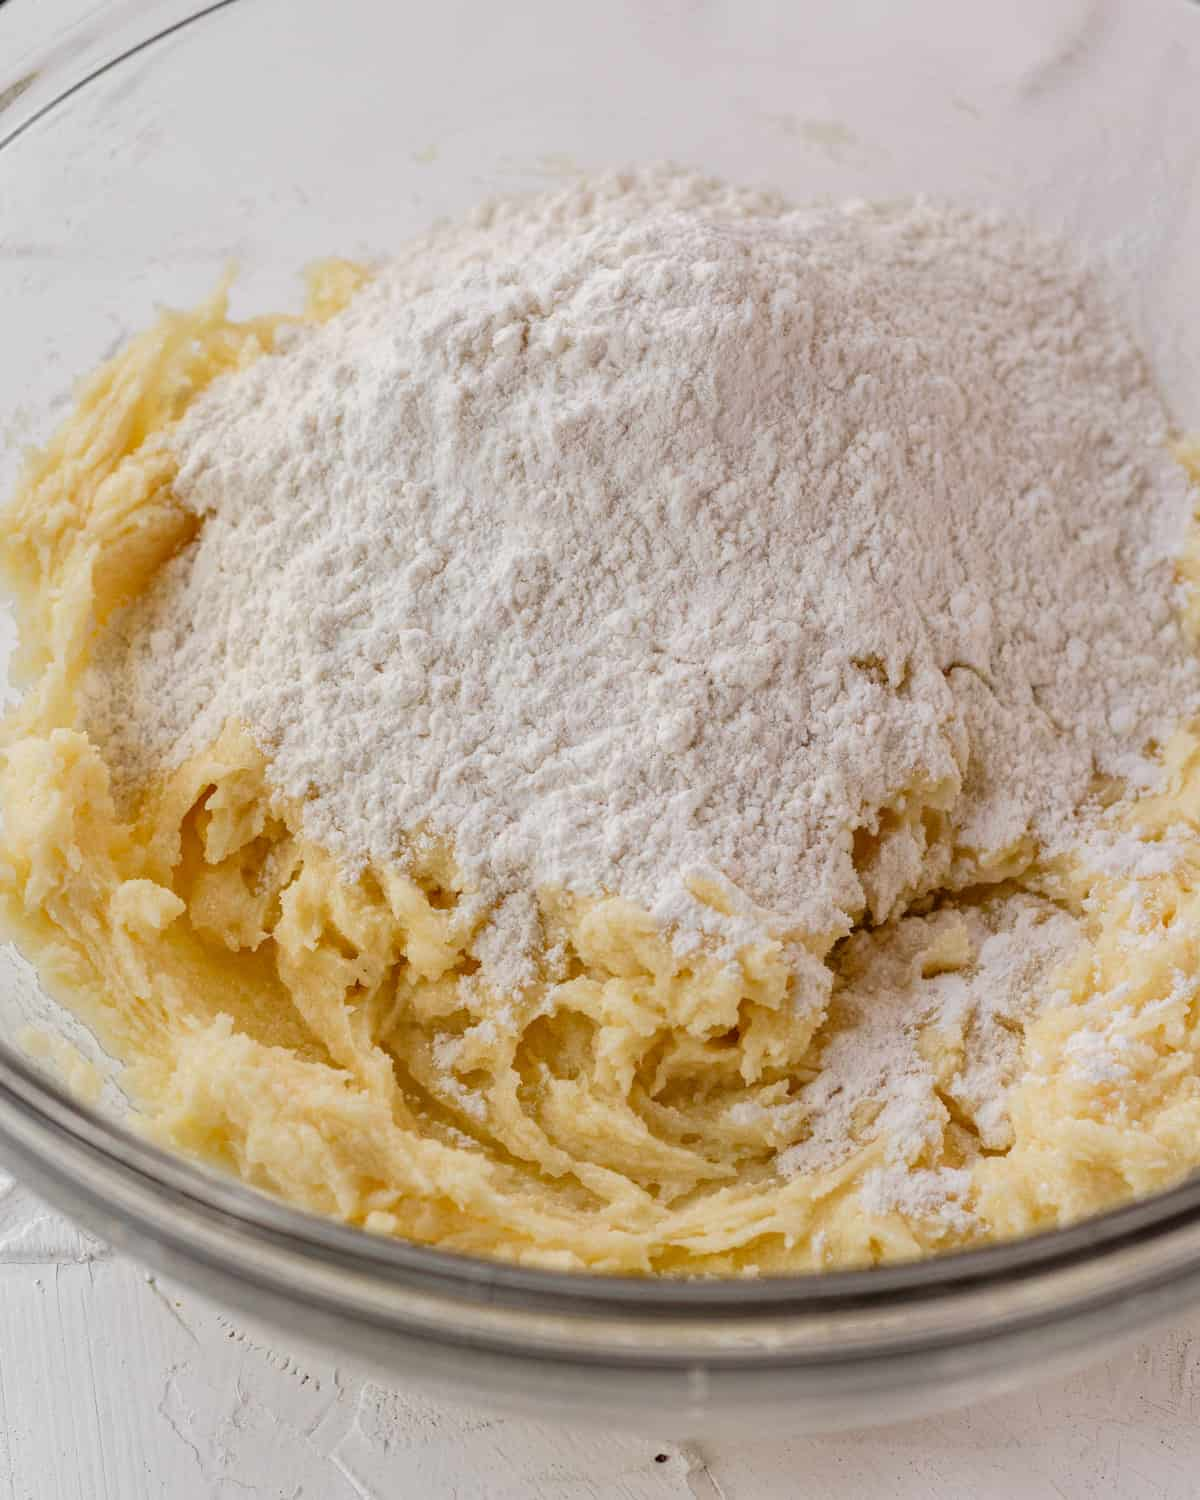 butter mixture with flour poured on top.